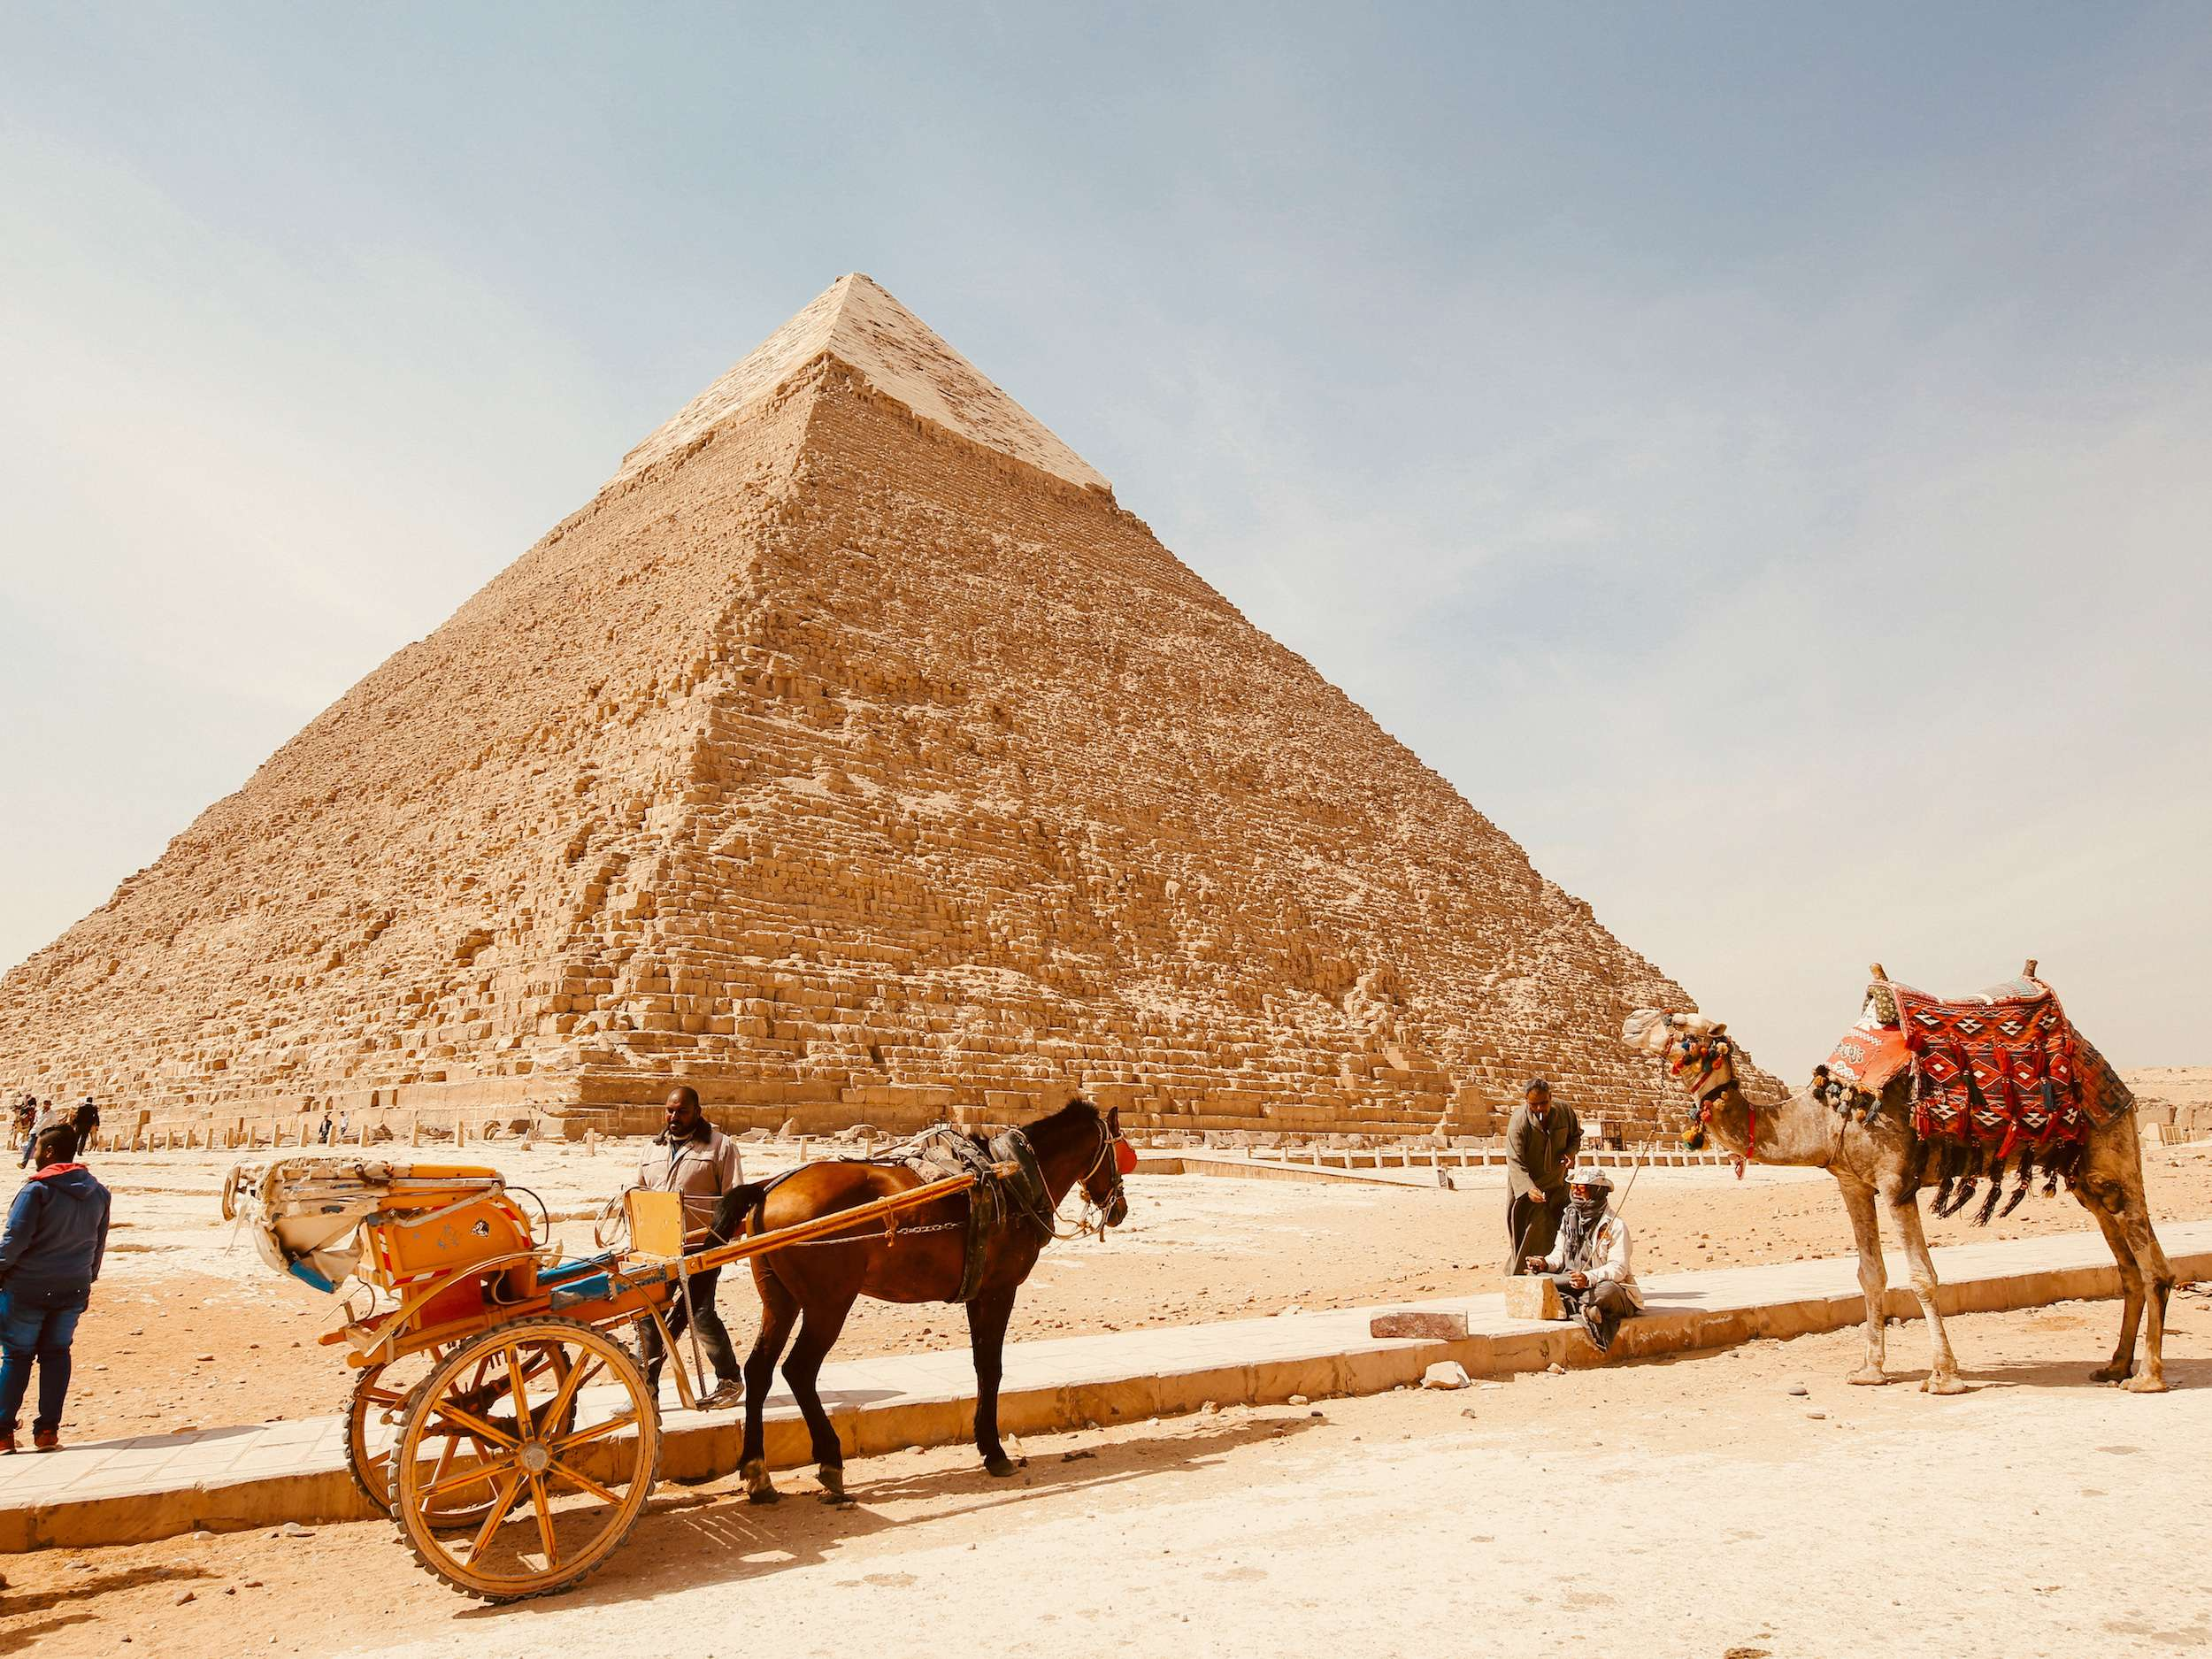 Pyramids in Giza a holiday destination in Egypt